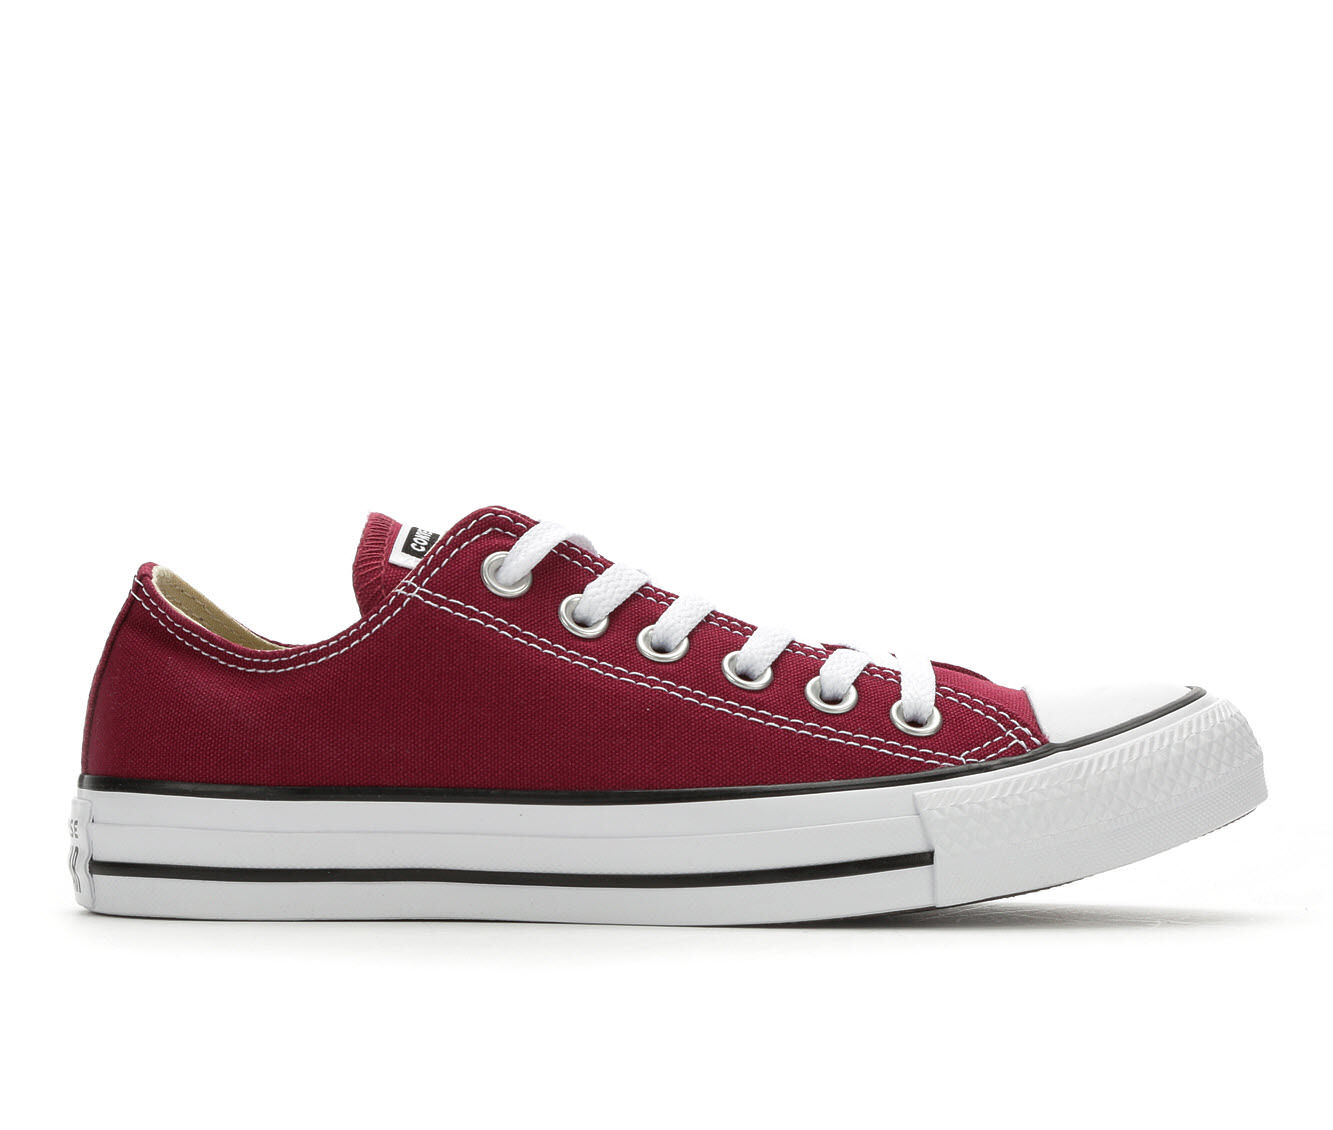 Adults' Converse Chuck Taylor Seasonal Sneakers Maroon